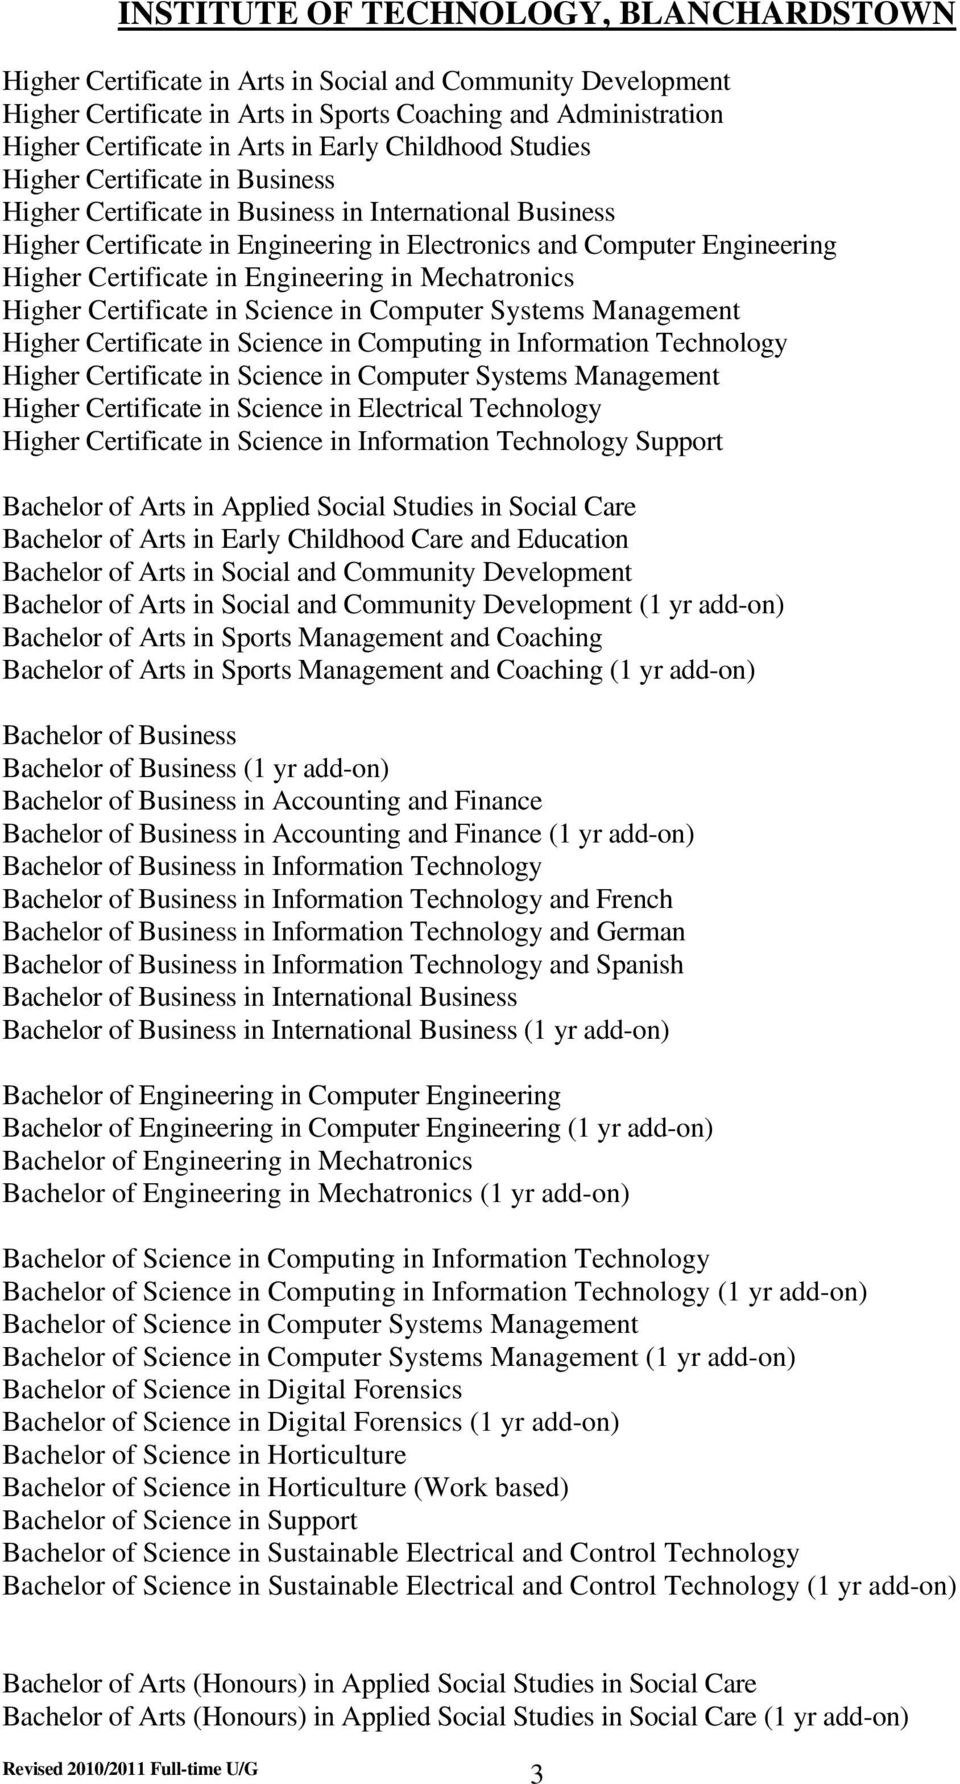 Certificate in Engineering in Mechatronics Higher Certificate in Science in Computer Systems Management Higher Certificate in Science in Computing in Information Technology Higher Certificate in